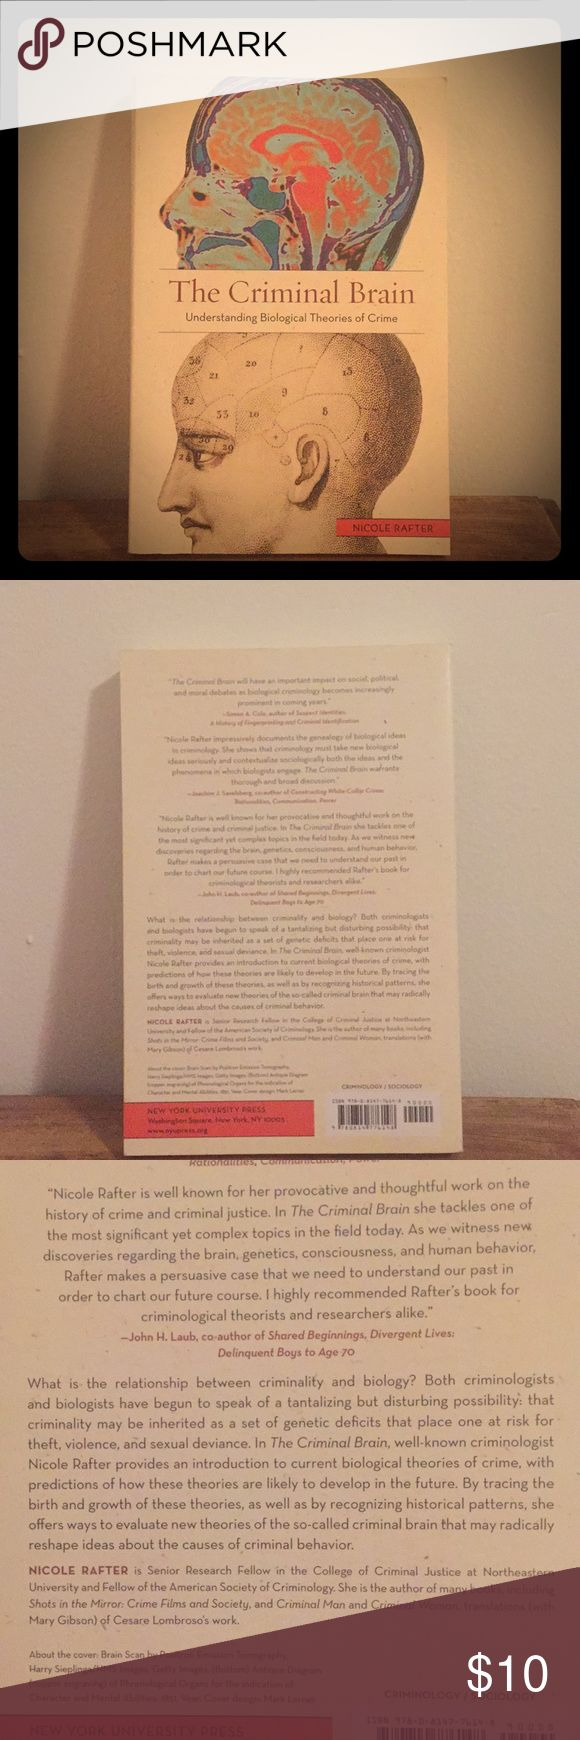 The Criminal Brain by Nicole Rafter Understanding Biological Theories of Crime. Paperback, excellent condition Other